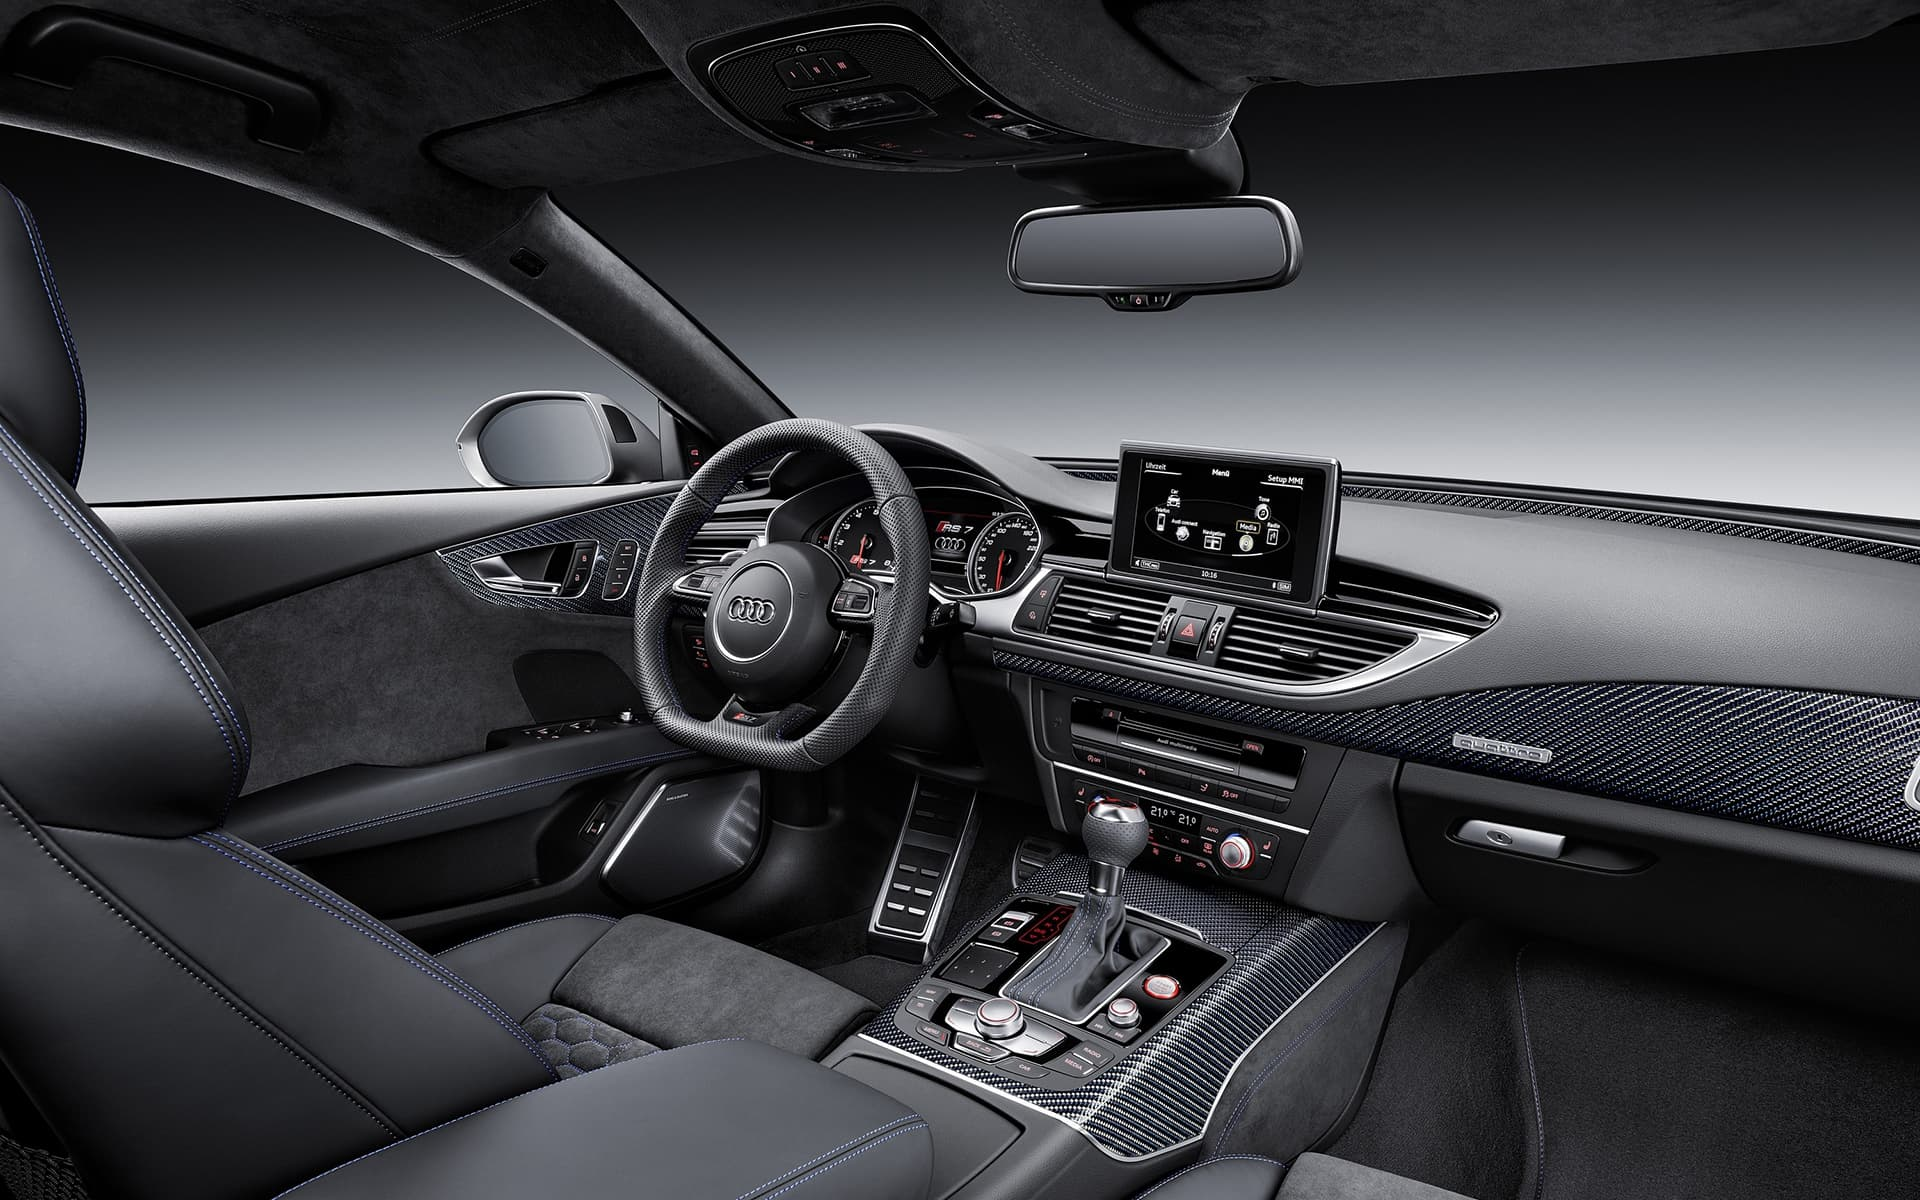 Black Car Hd Wallpaper Download 2016 Audi Rs7 Wallpapers Hd High Quality Resolution Download